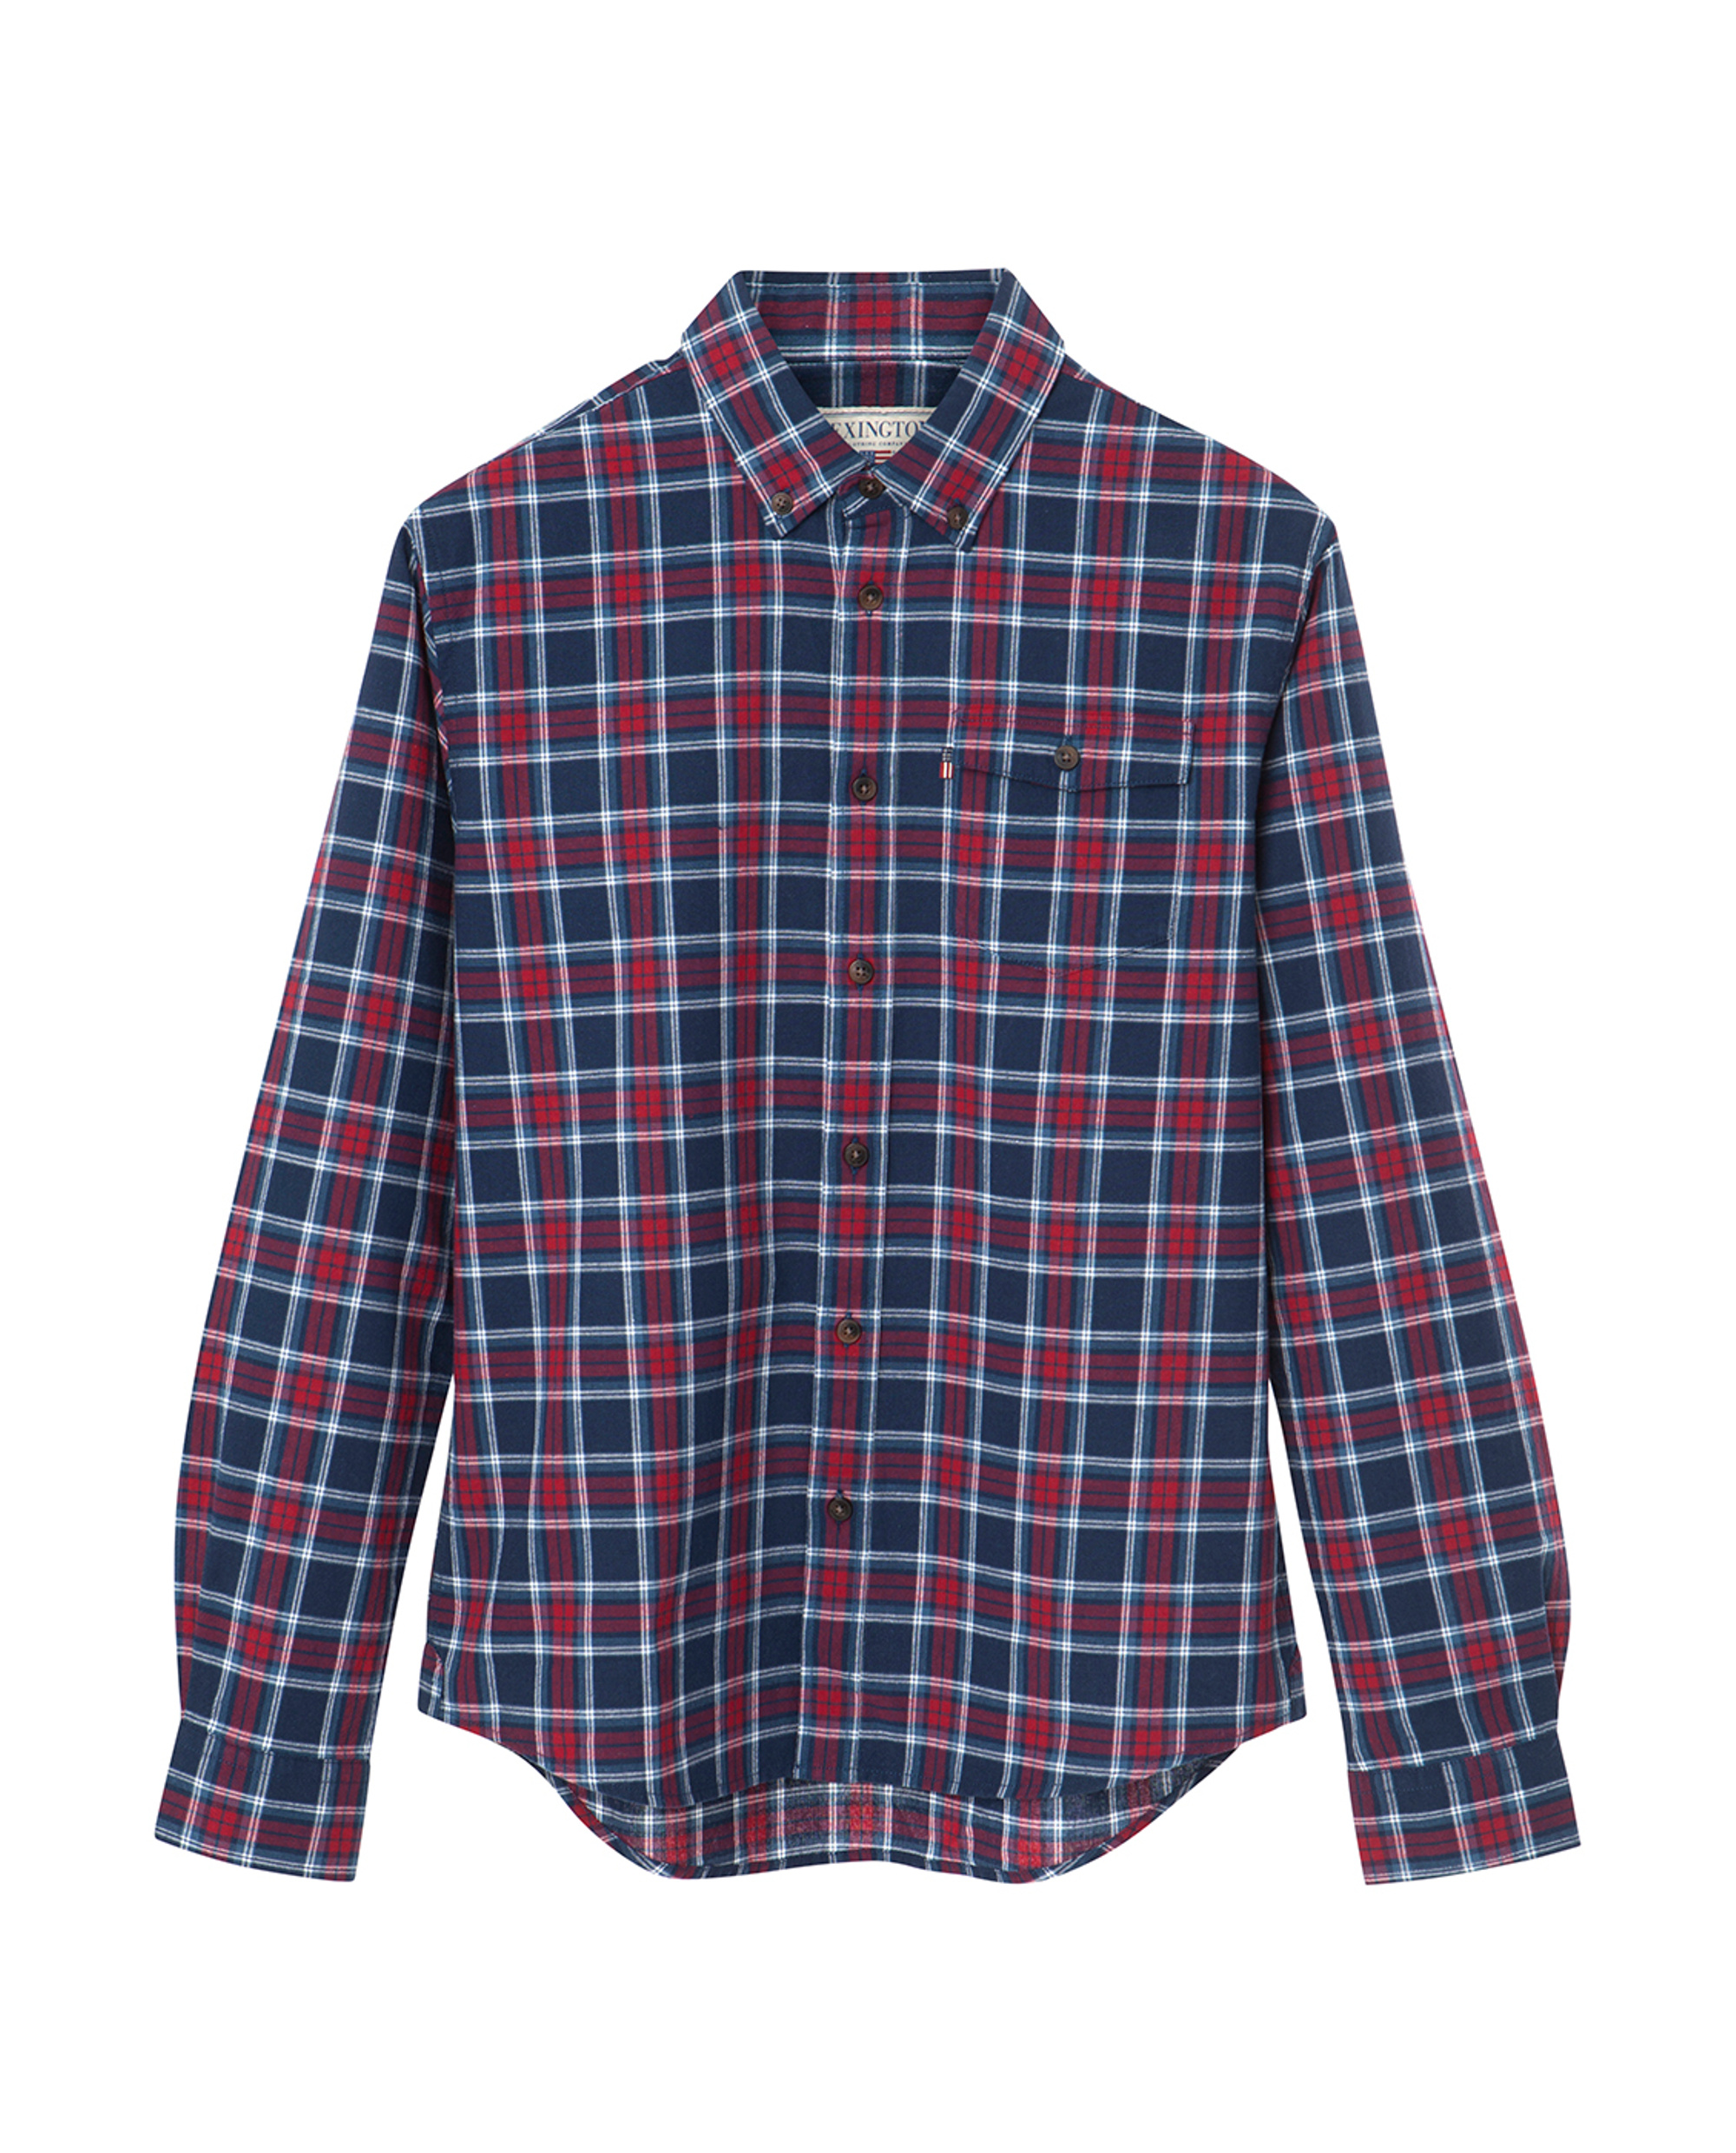 Aaron Checked Shirt, Blue Multi